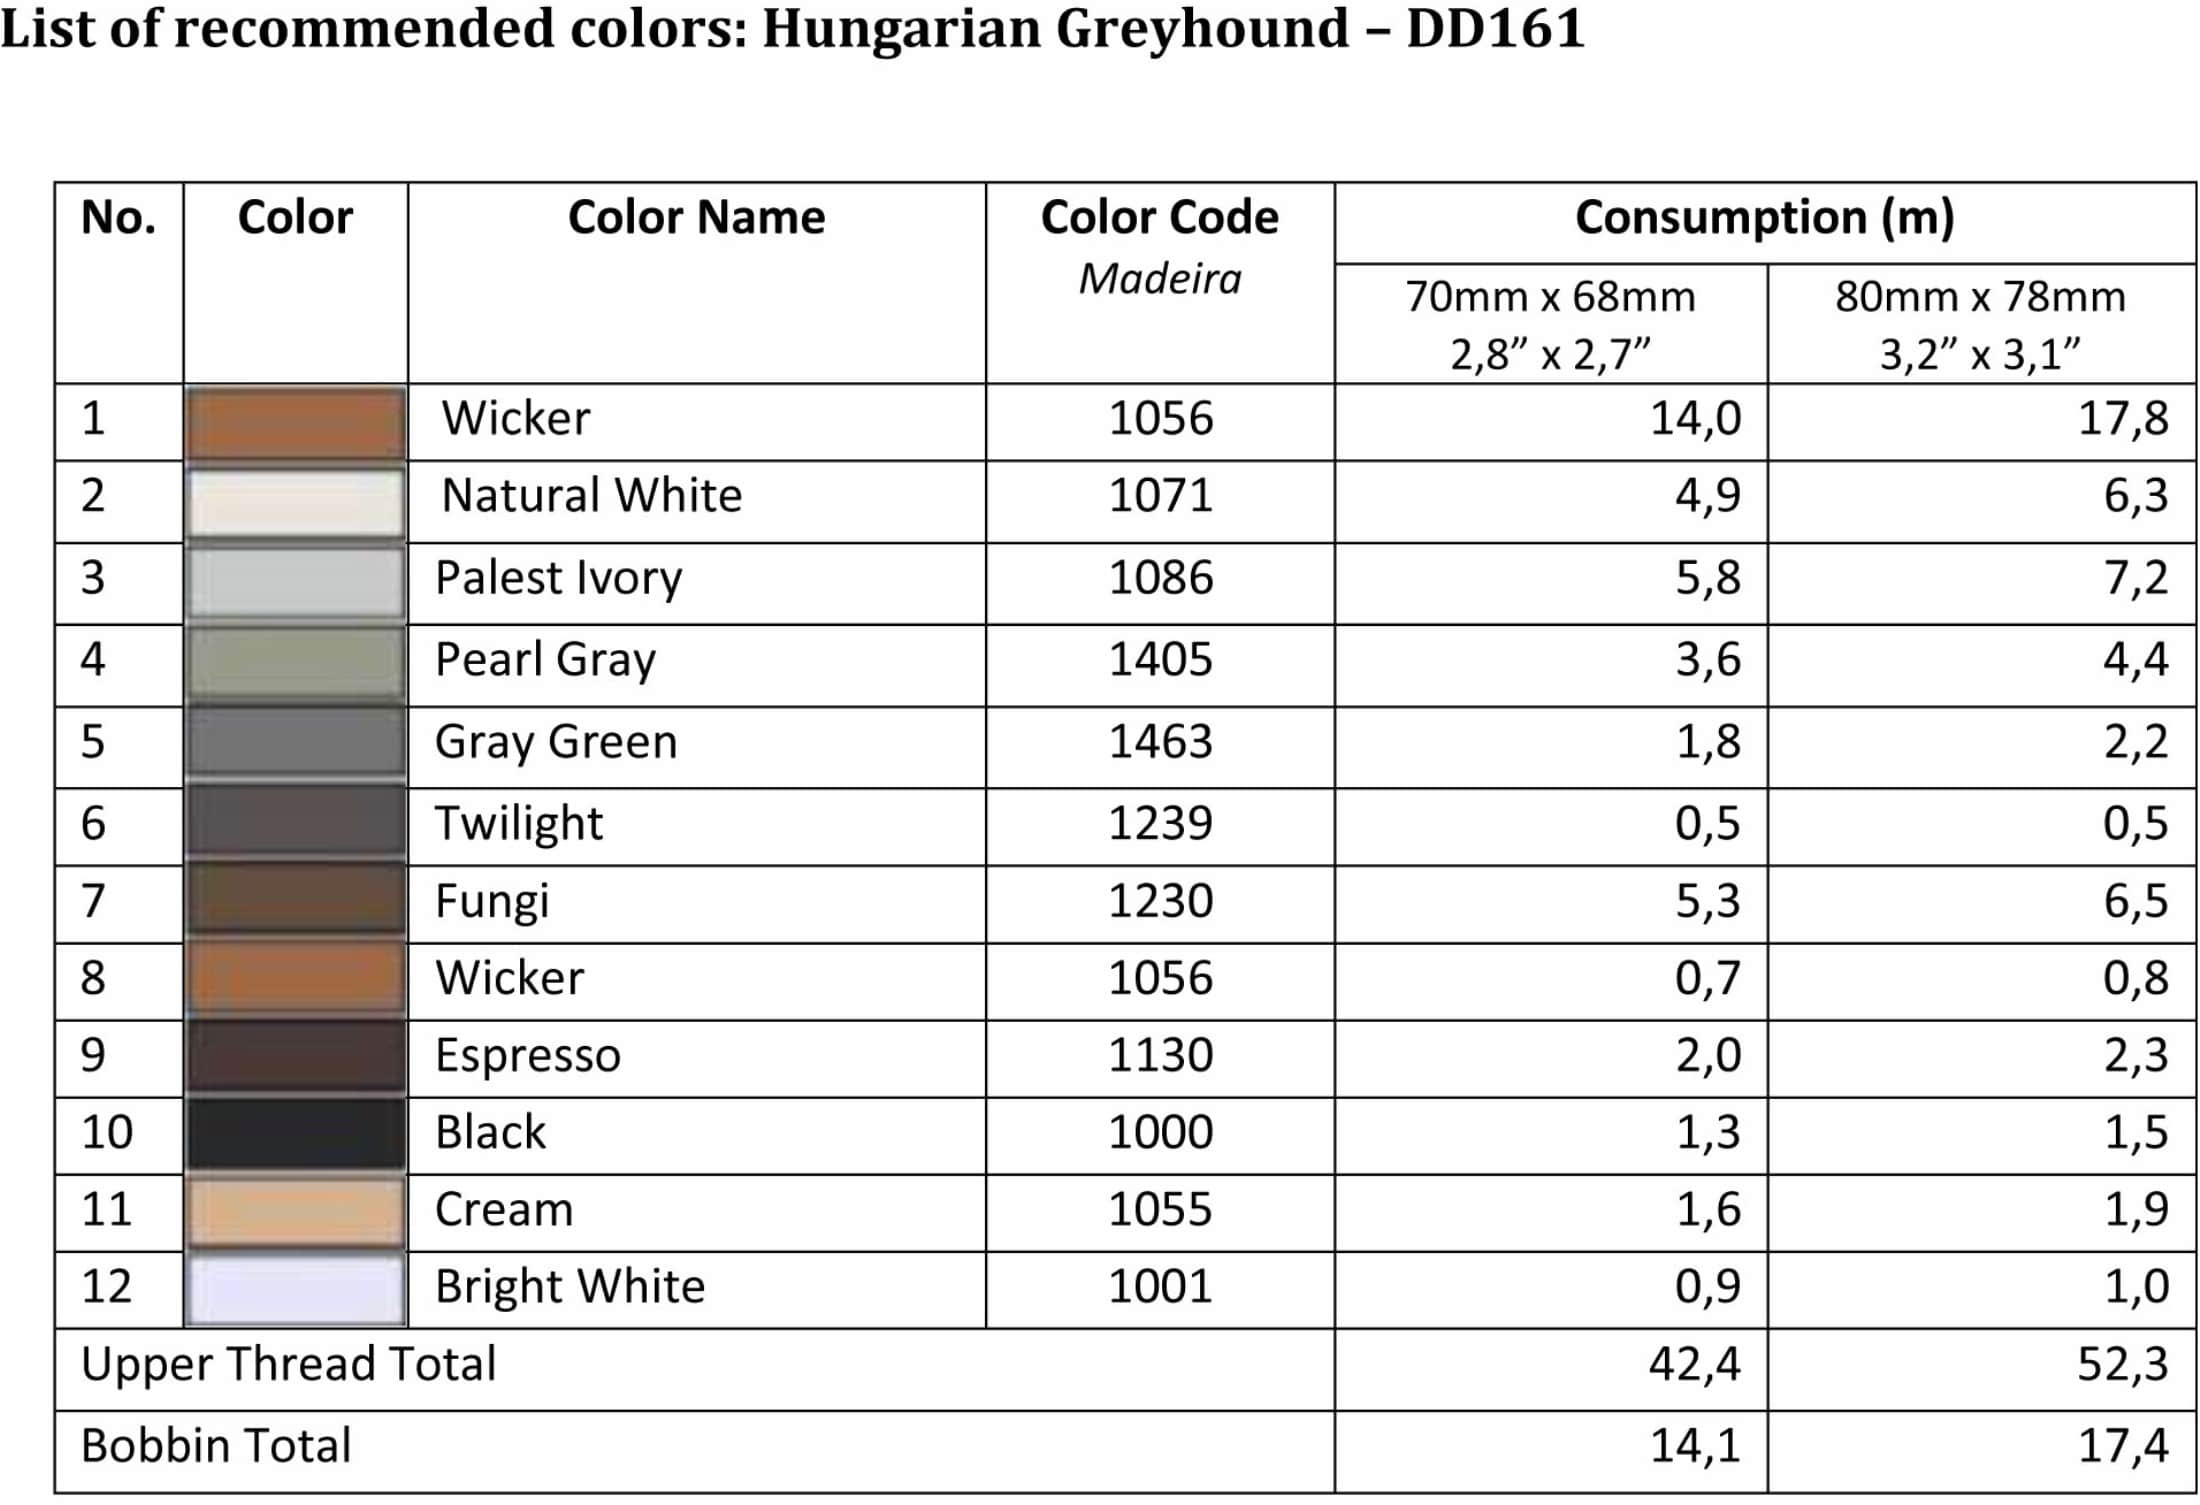 List of recommended colors - DD161